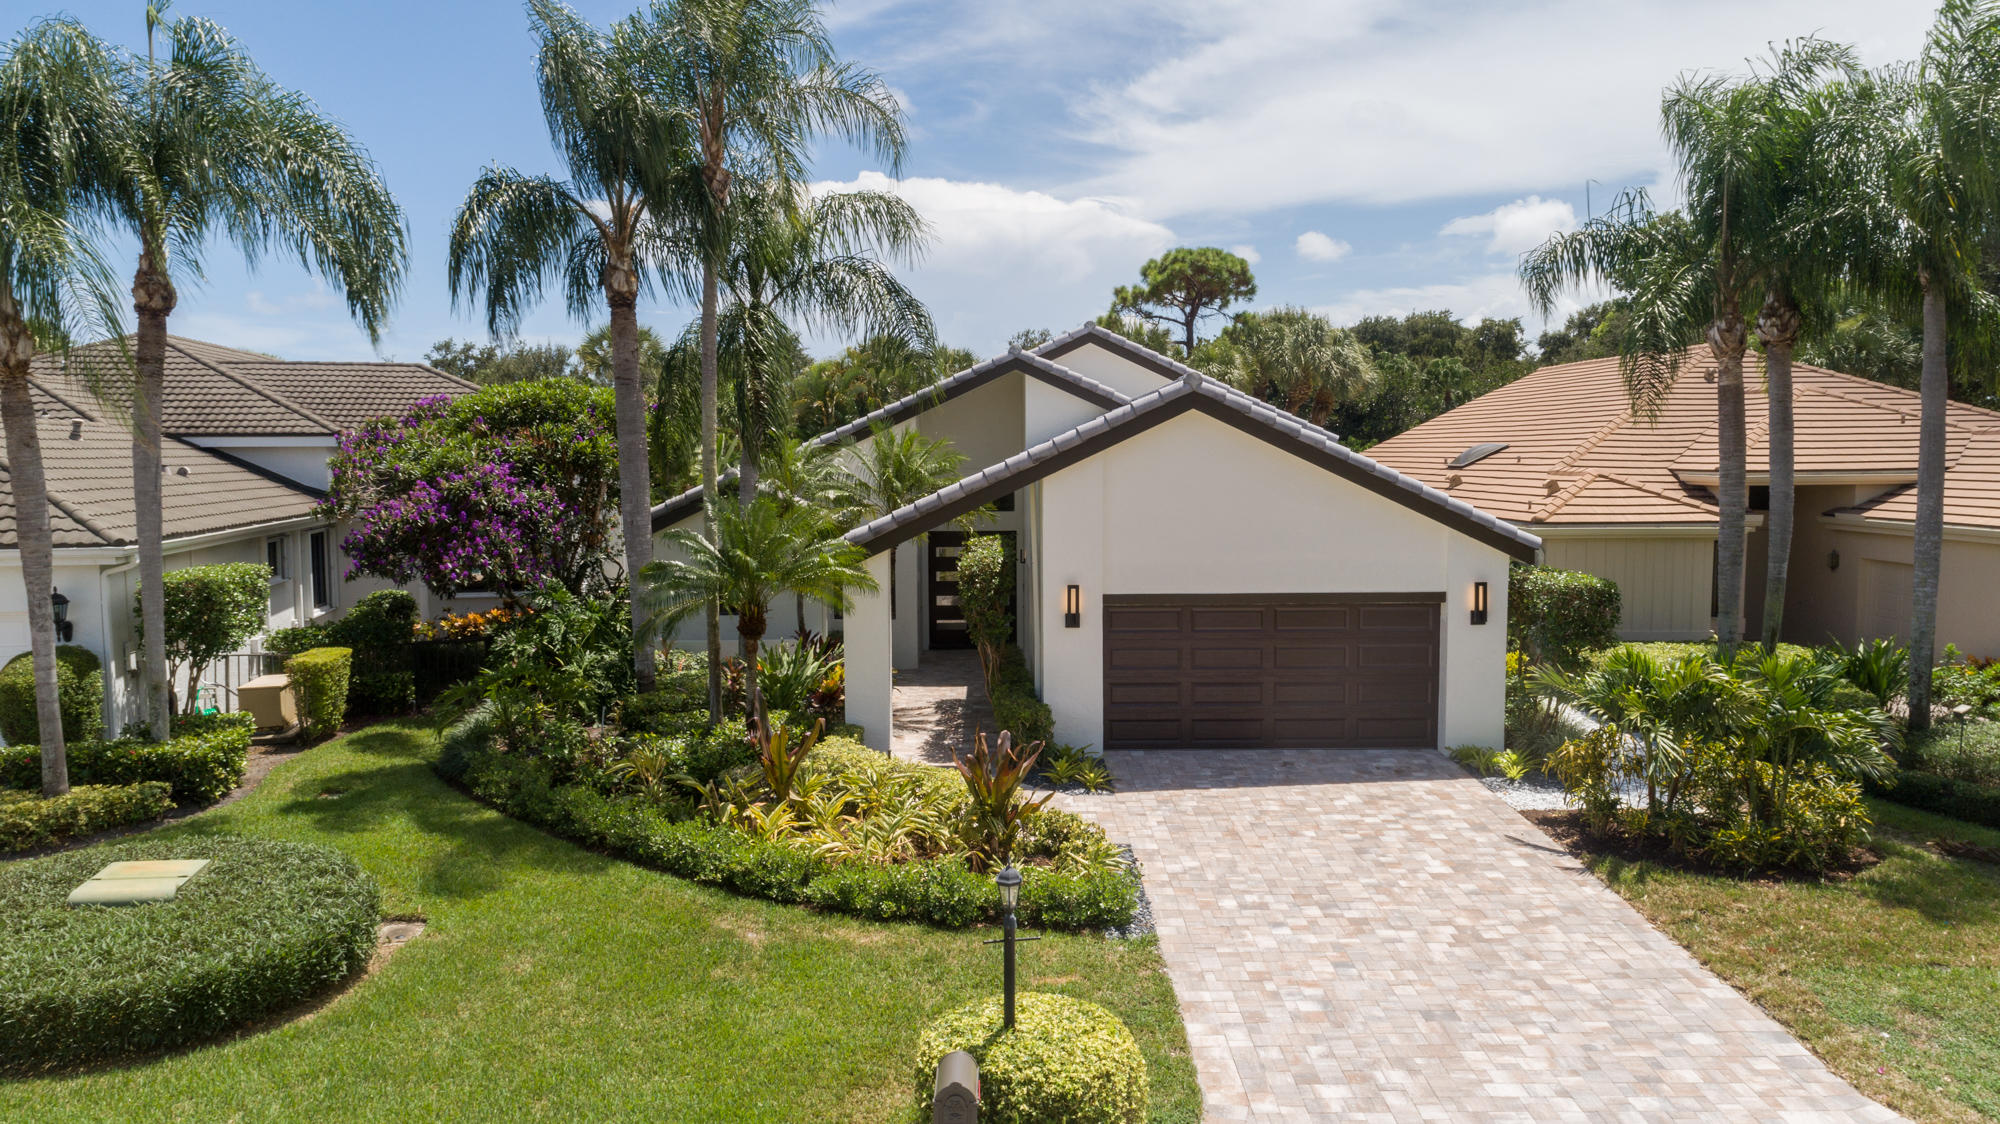 13220 Verdun Drive, Palm Beach Gardens, Florida 33410, 3 Bedrooms Bedrooms, ,4.1 BathroomsBathrooms,A,Single family,Verdun,RX-10460693